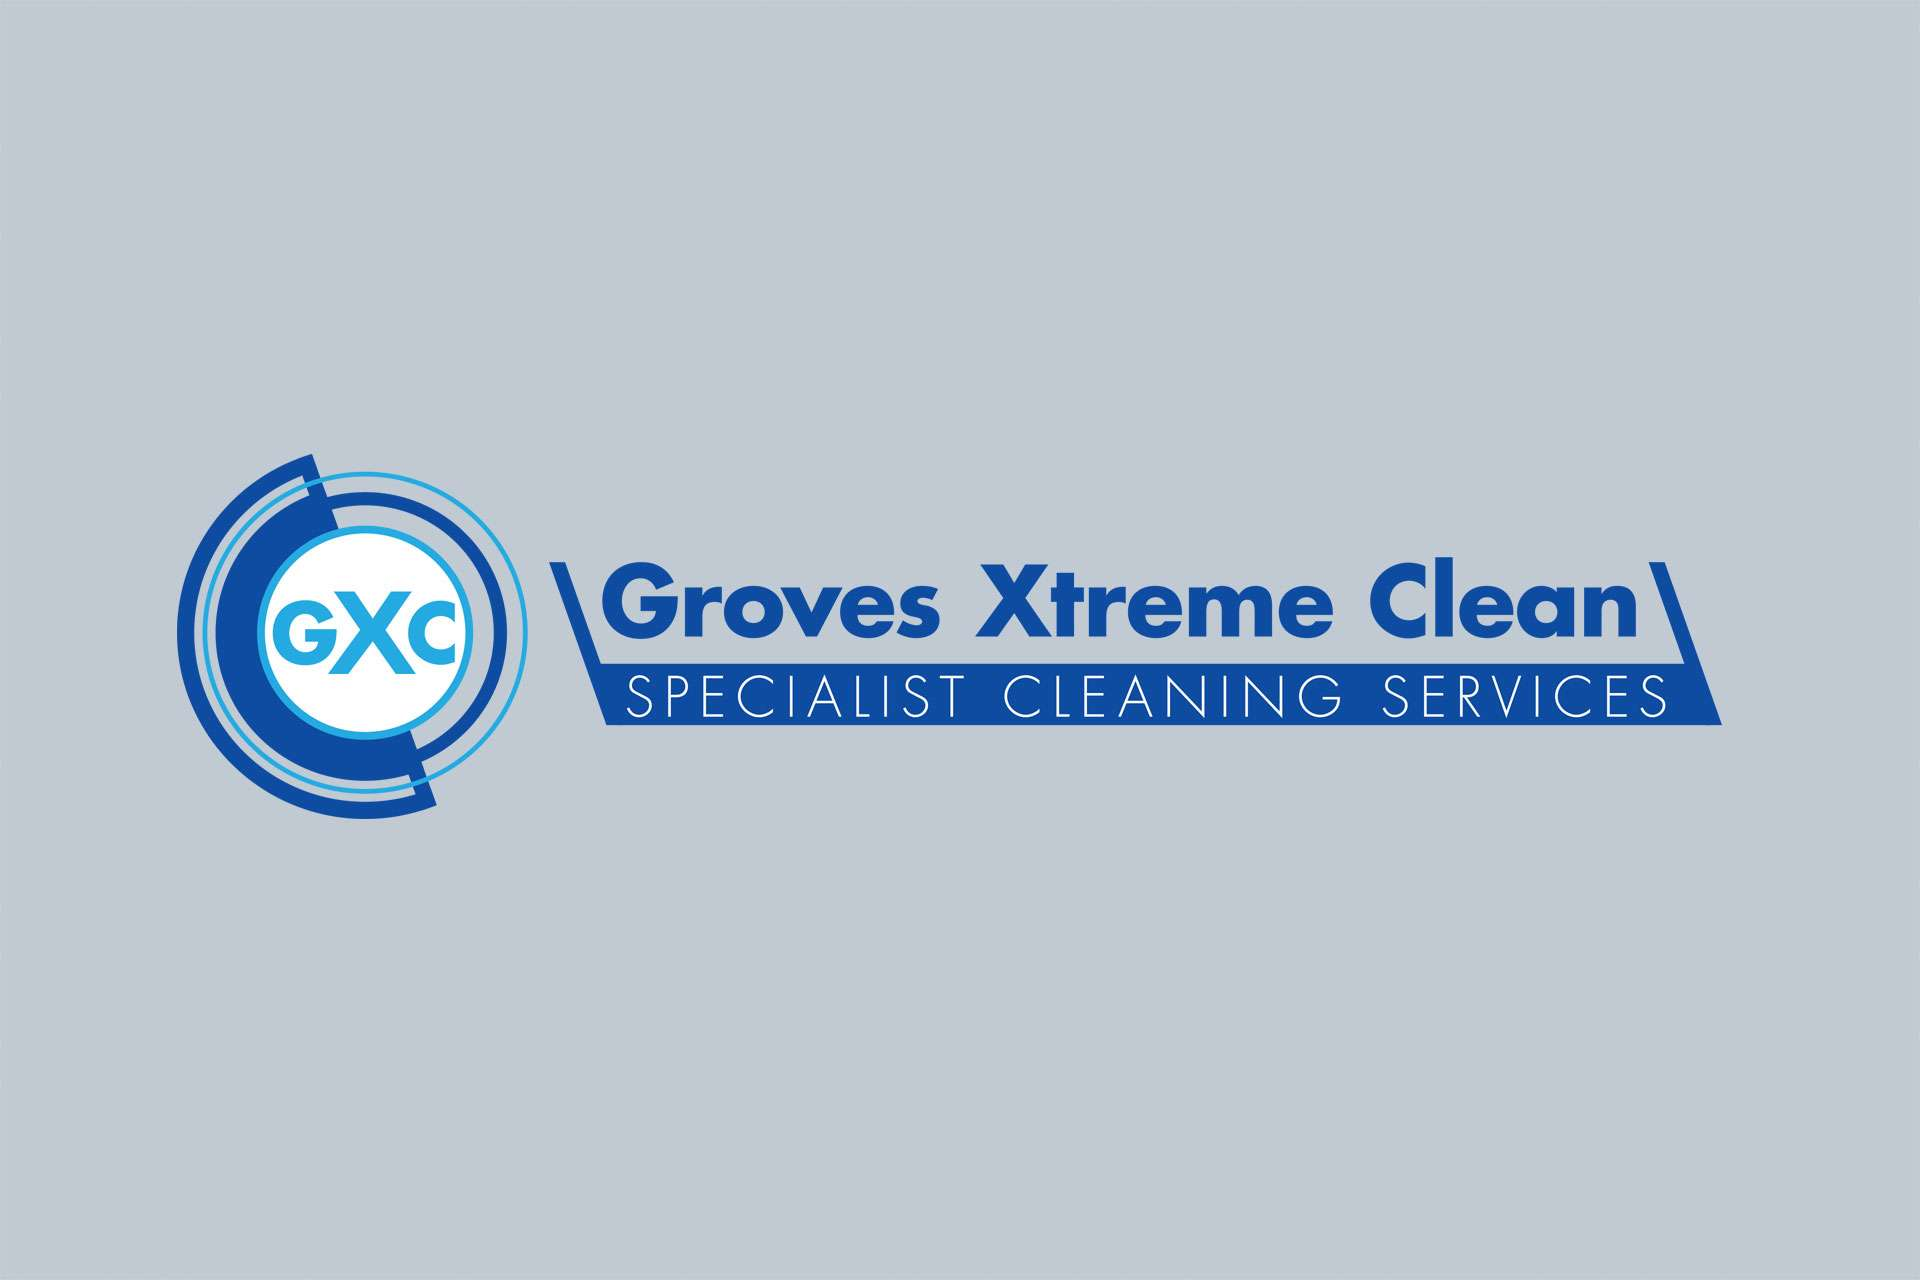 groves xtreme clean logo design